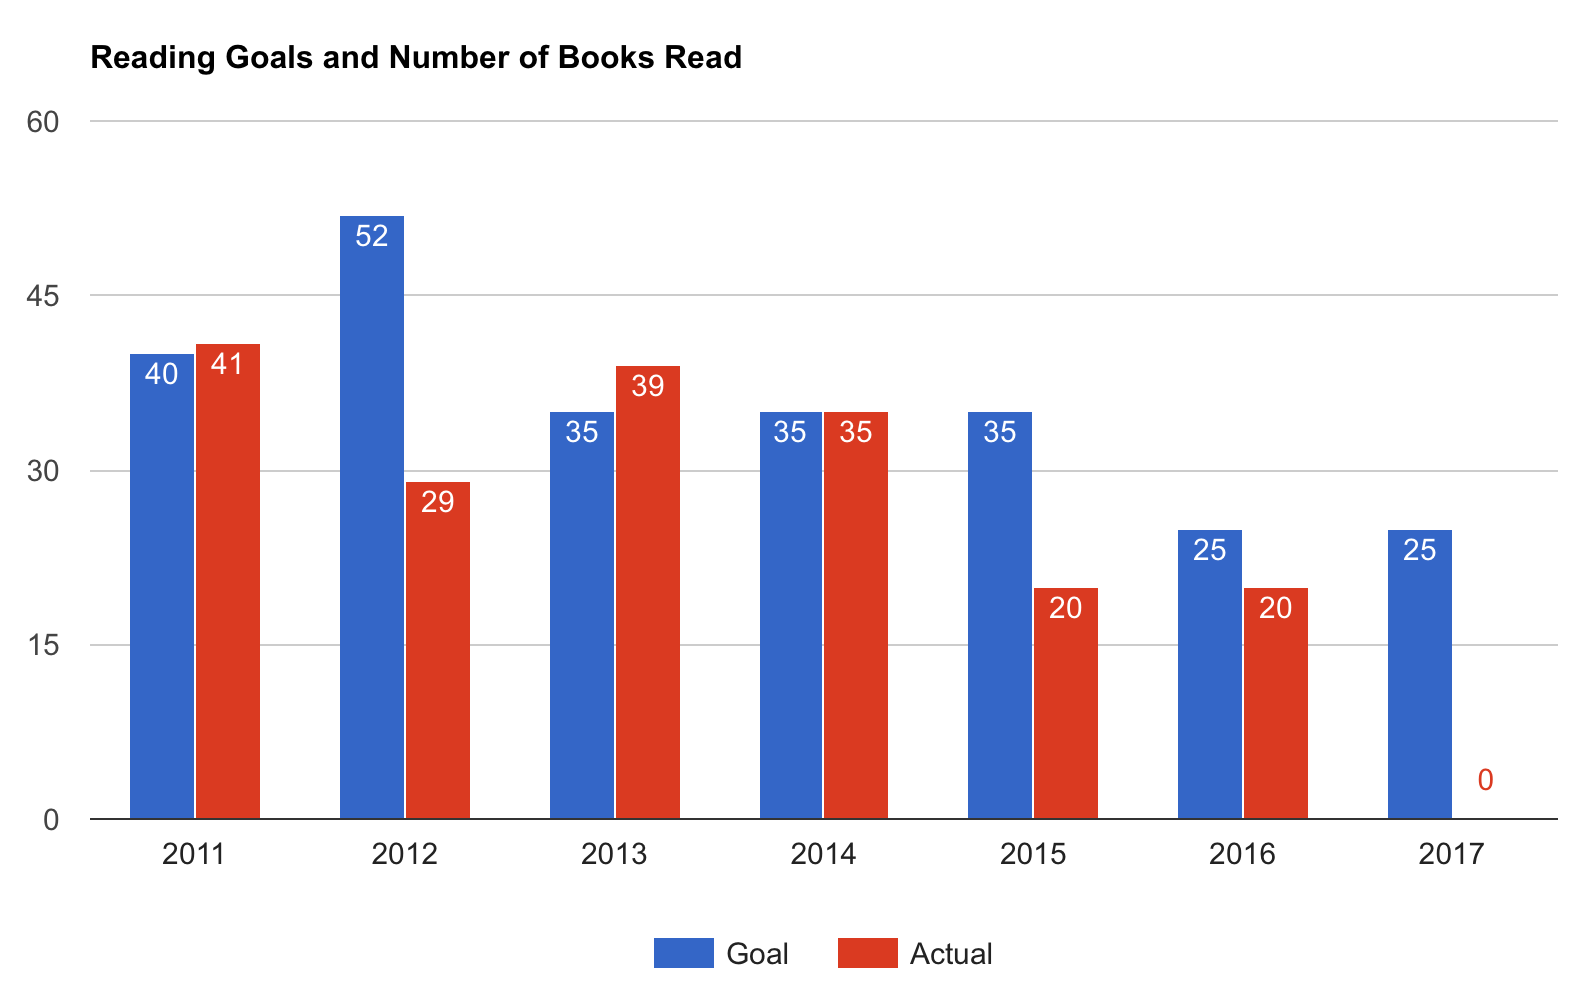 Book Reading Goals vs Books Read from 2011 to 2016